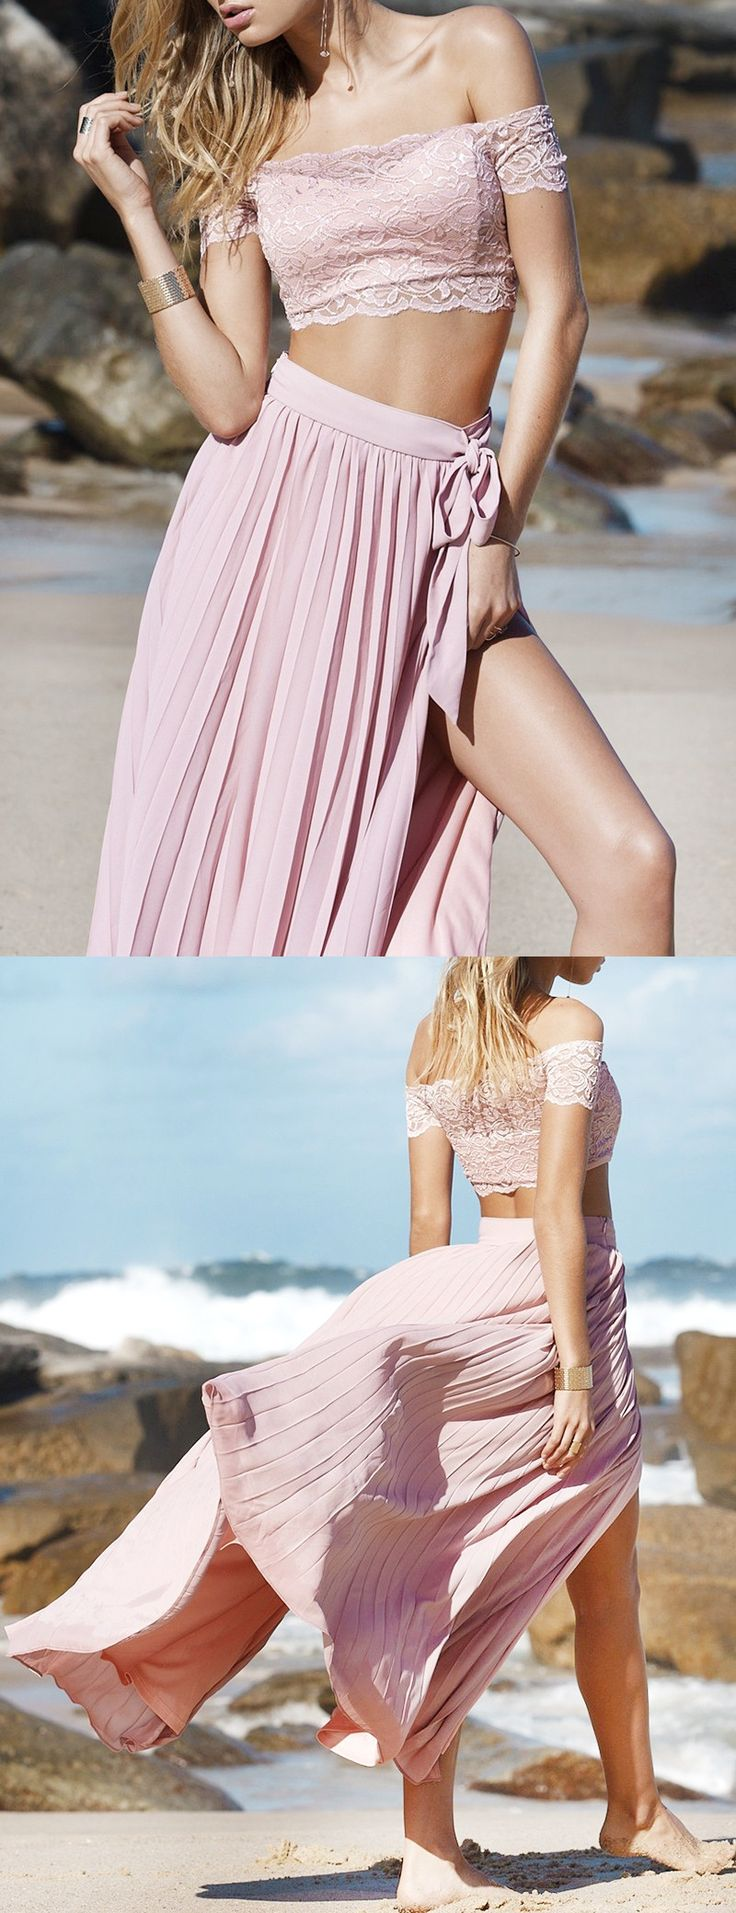 2017 prom dress, two piece long prom dress, pink long prom dress, off the shoulder long prom dress, slit formal evening dress, bohemian prom dress